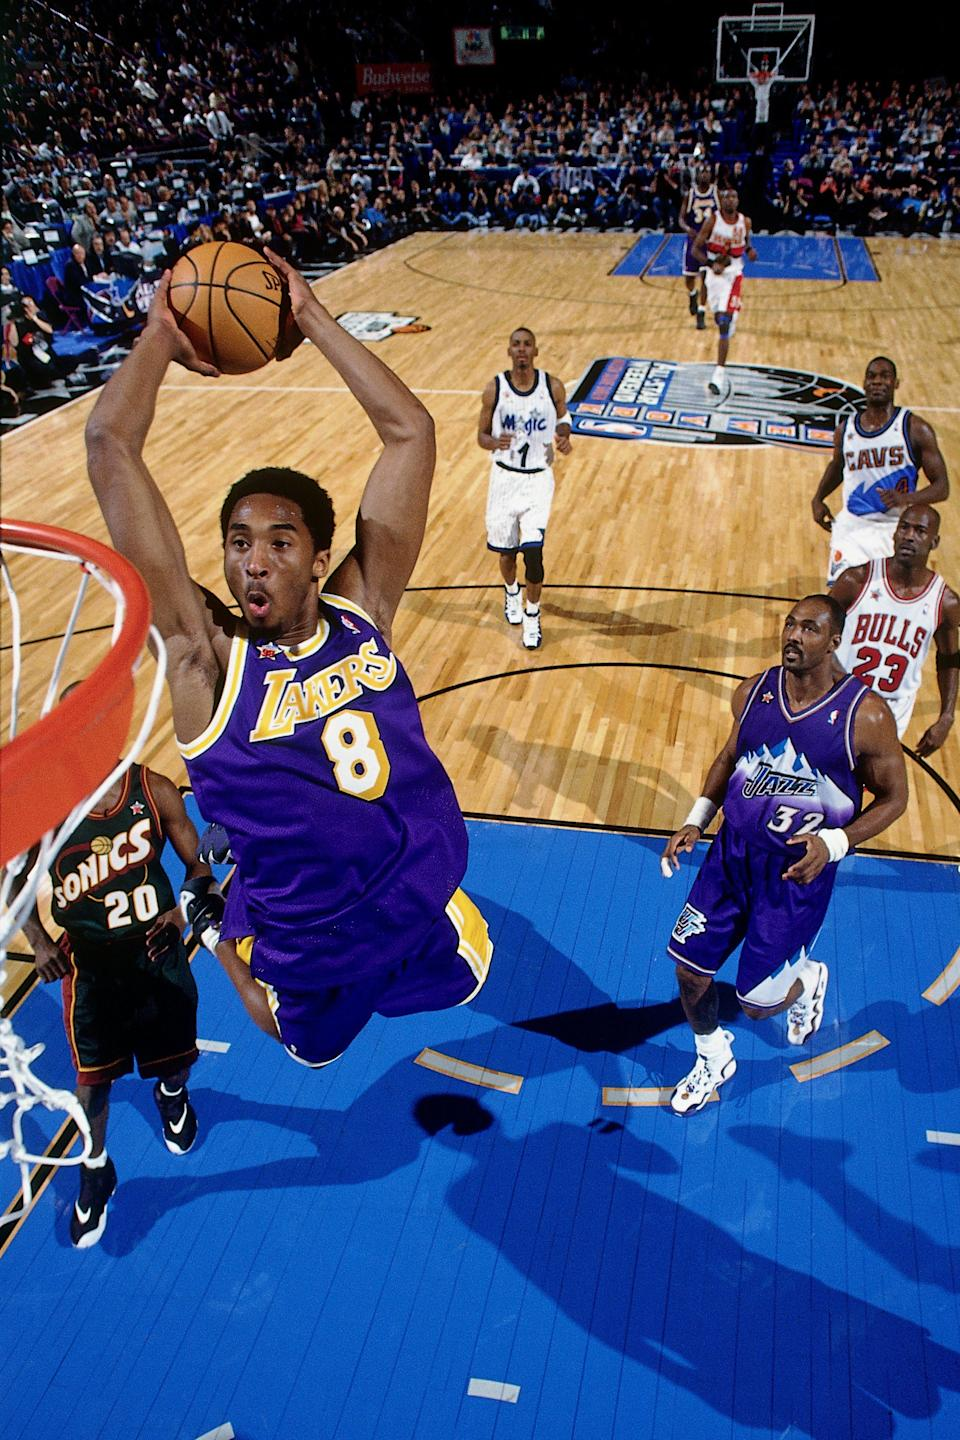 Kobe Bryant became the youngest All-Star in NBA history in 1998. Needless to say, the rest of the league was taking notice of the mercurial rise of the teenaged progidy. (Andrew D. Bernstein/NBAE via Getty Images)